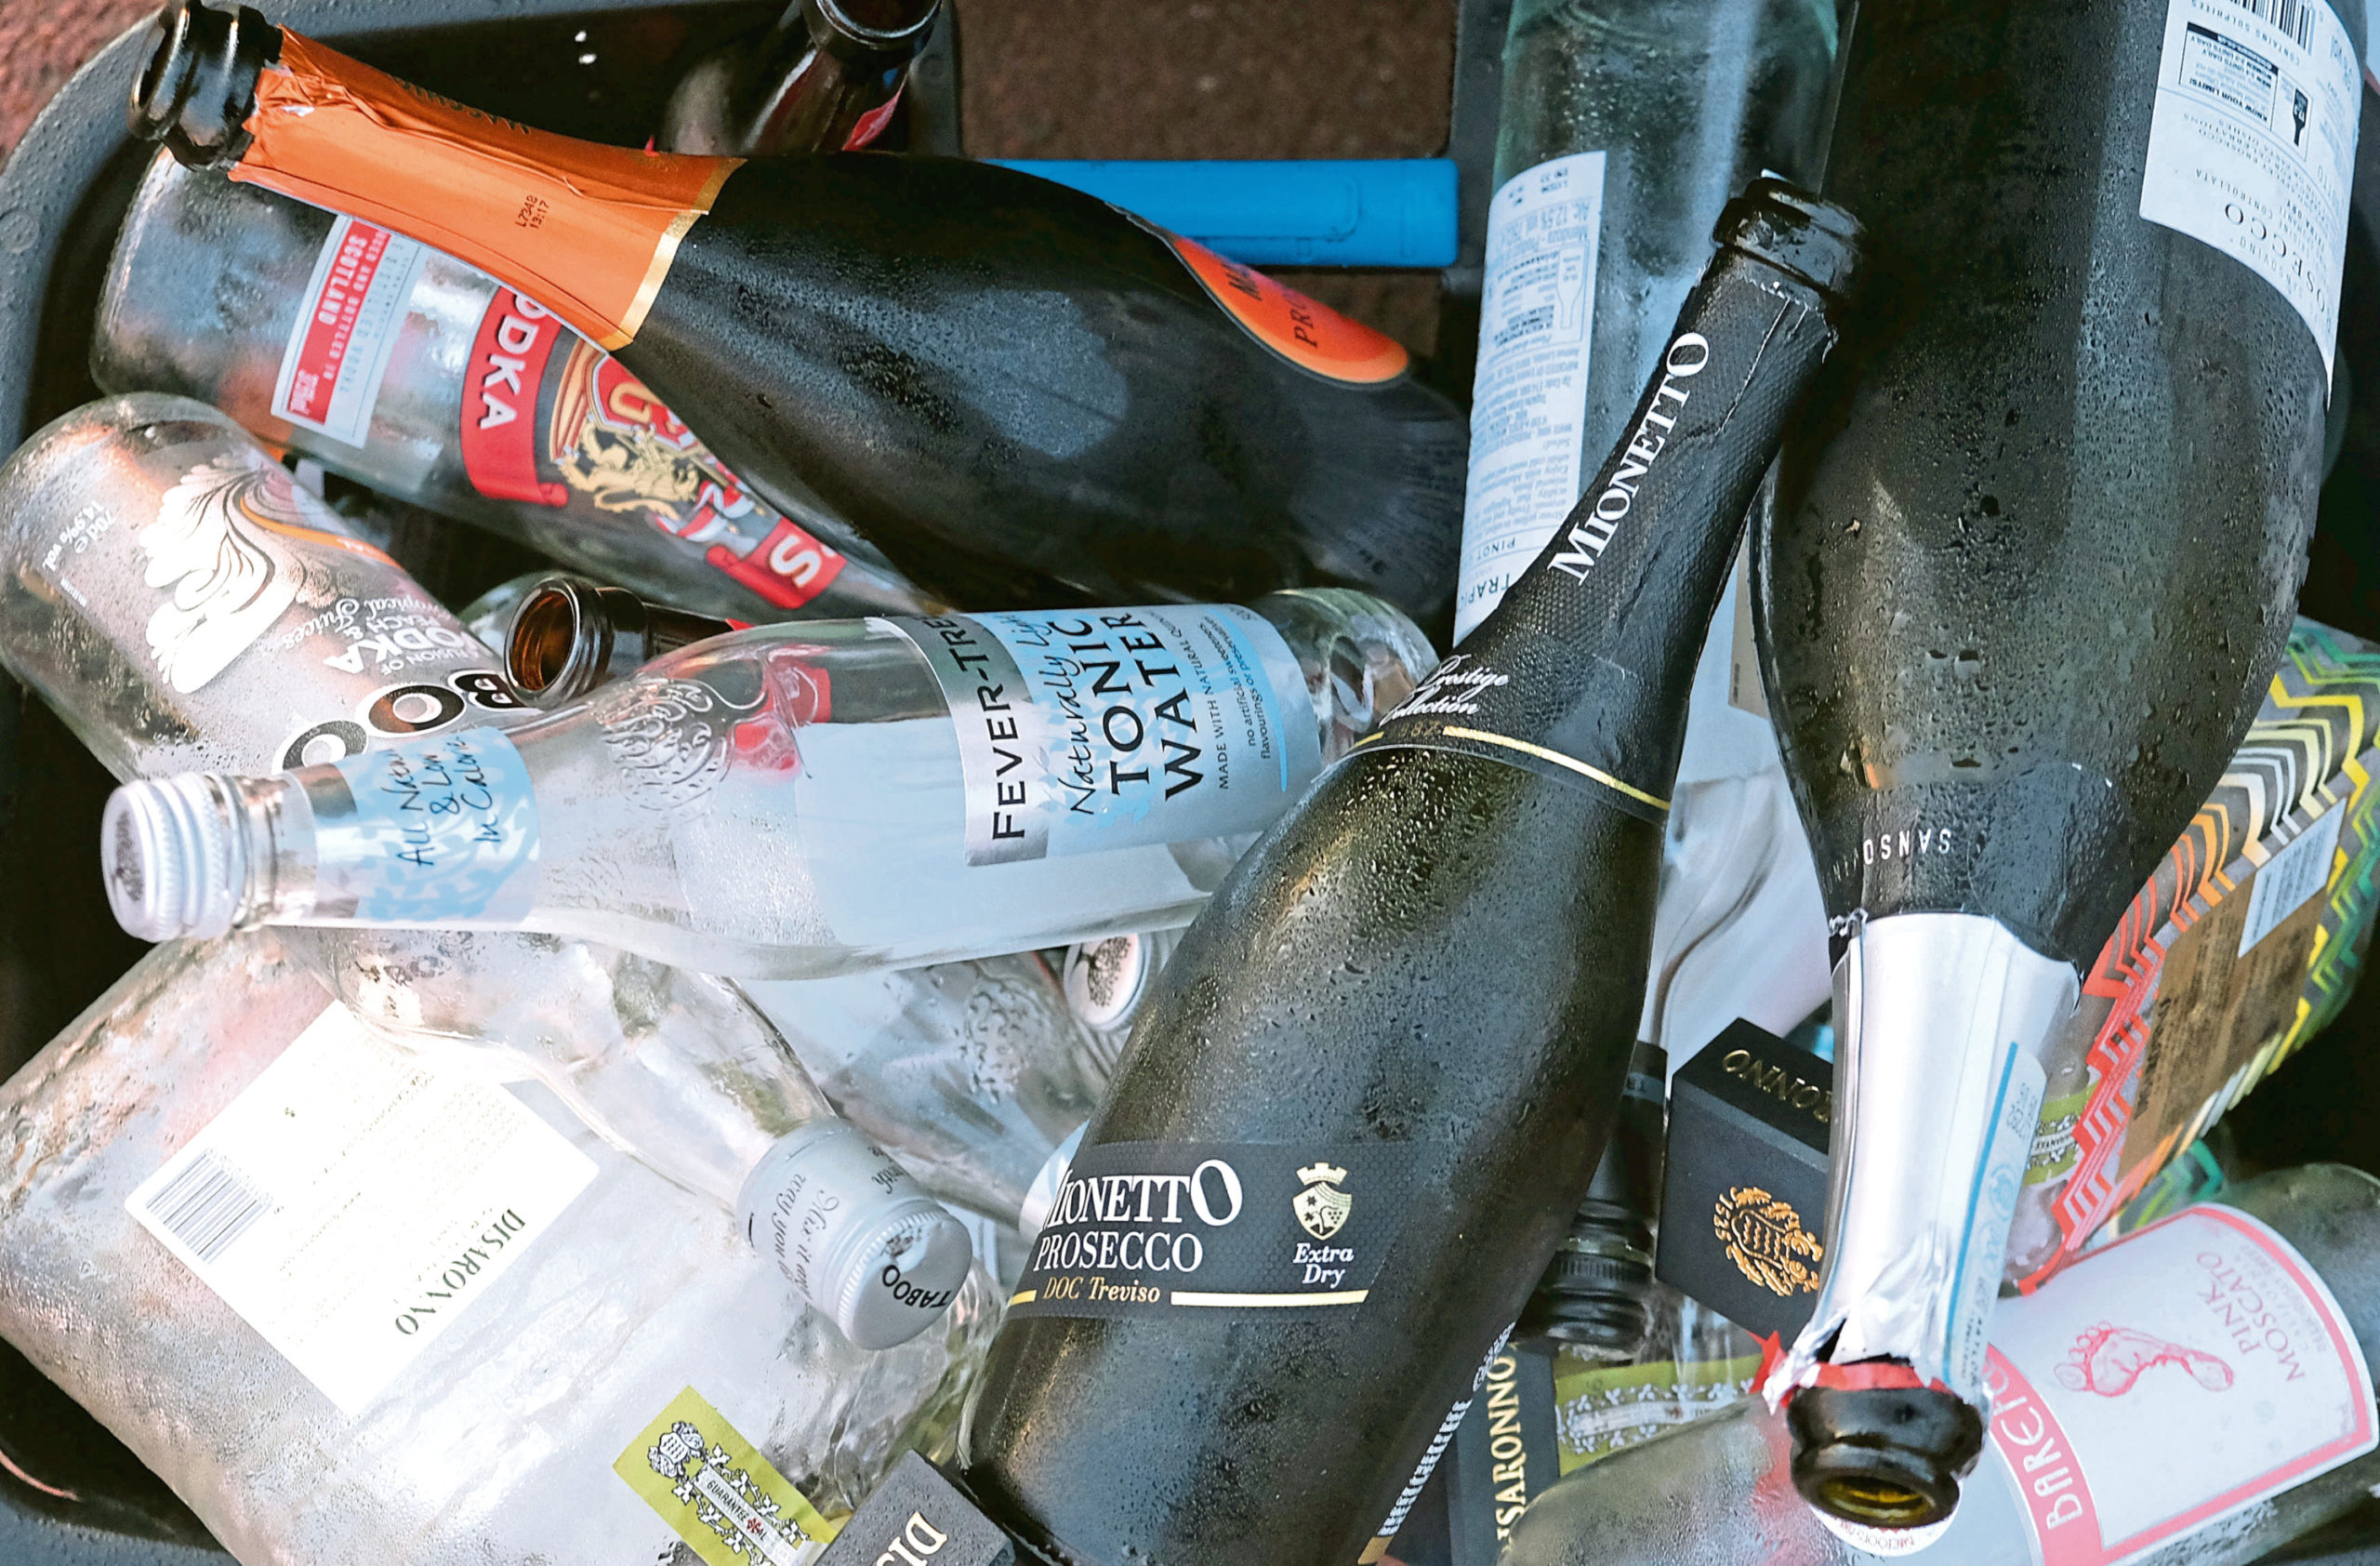 Scott Begbie has been recycling every last bottle and can on a regular basis